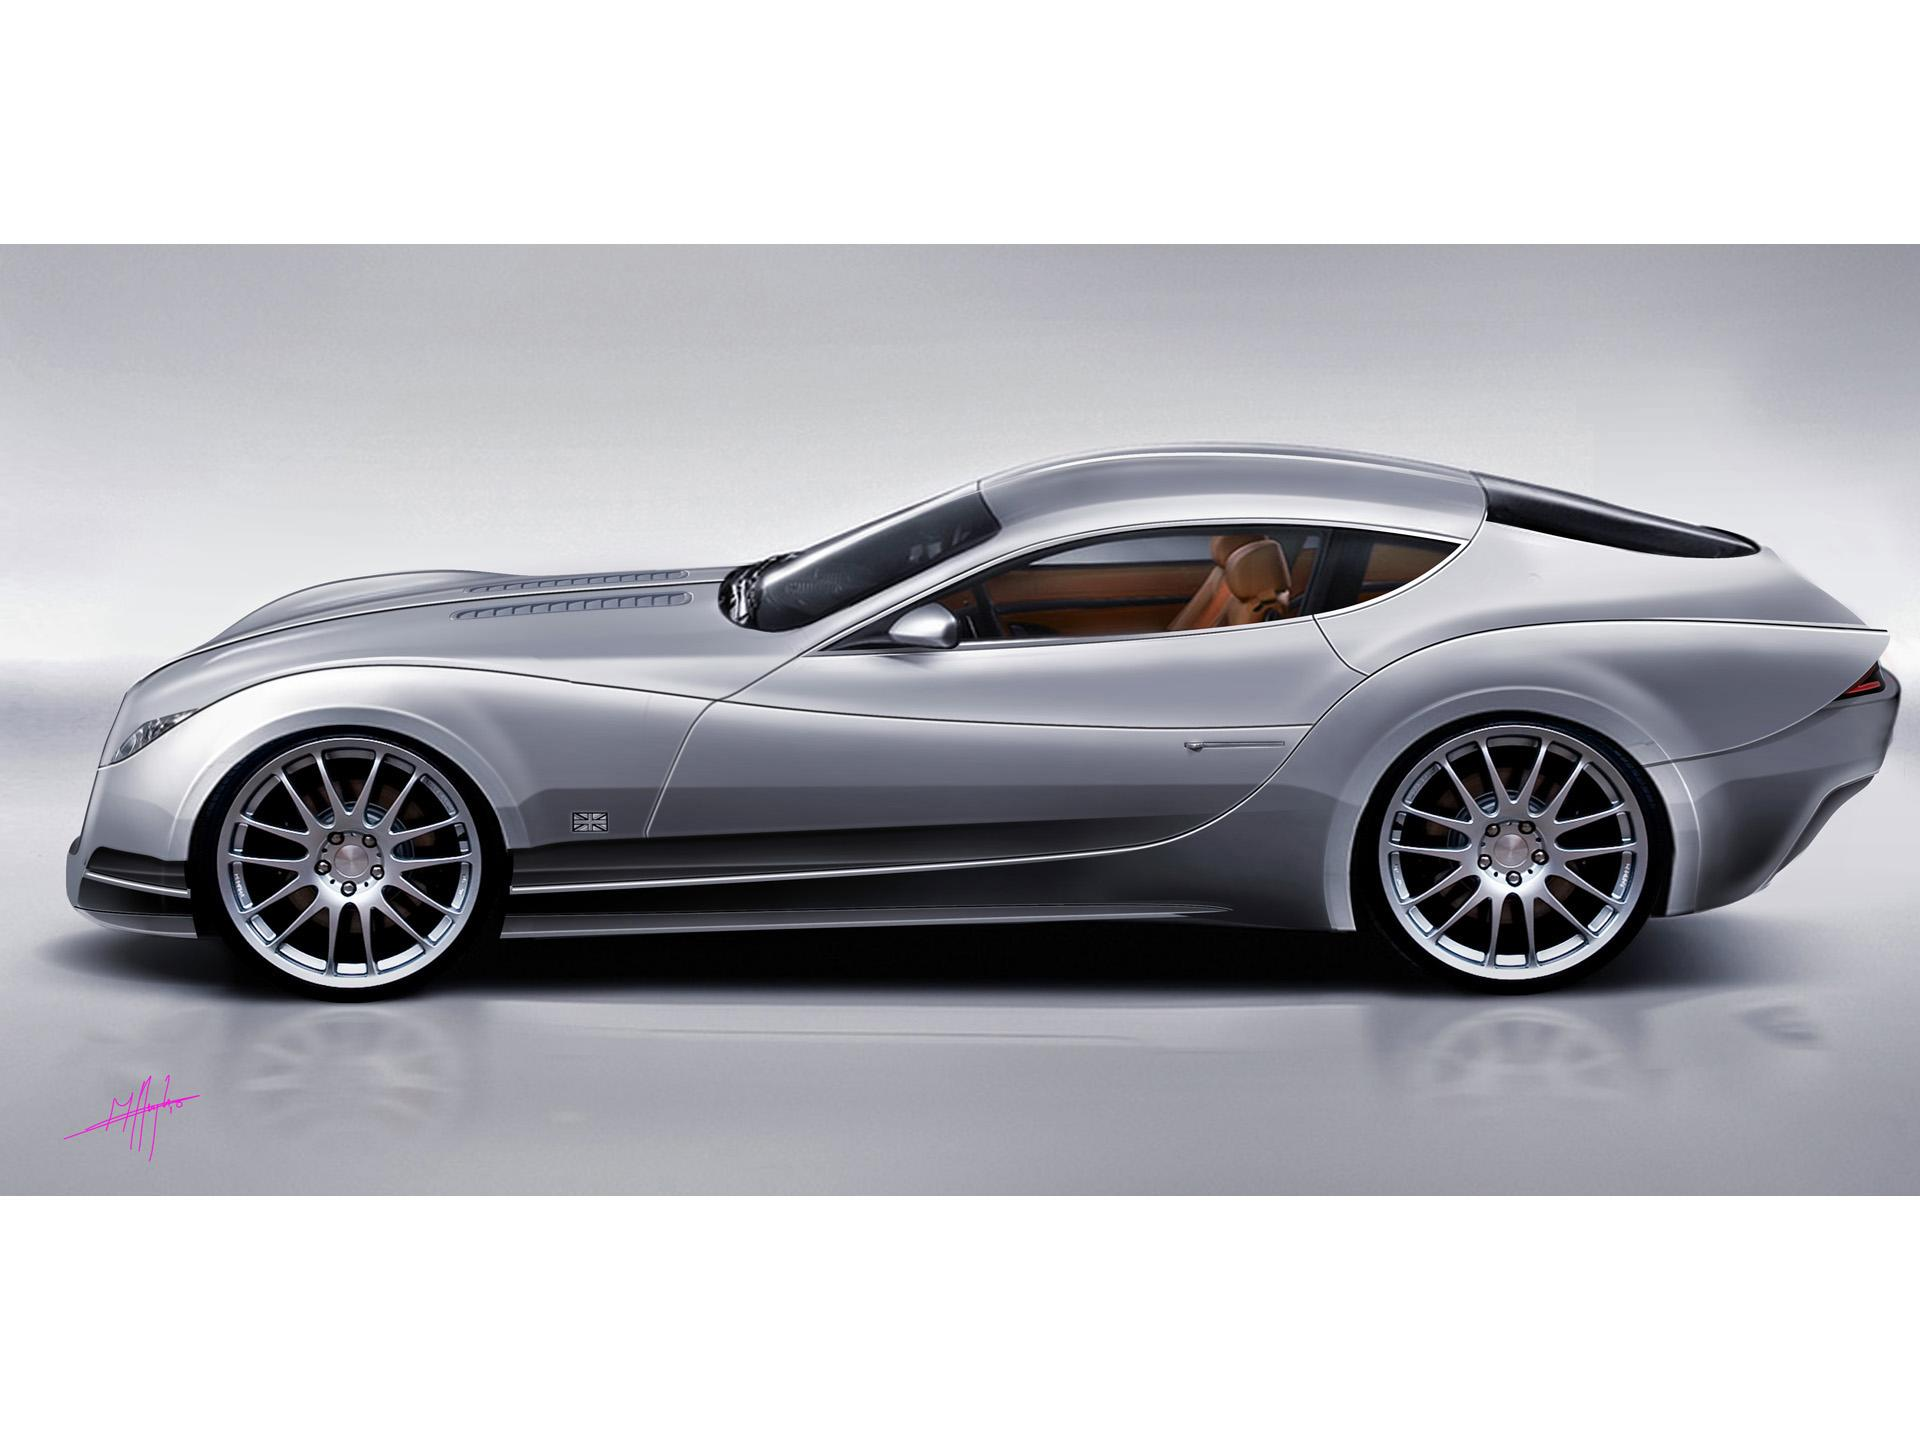 2010 Morgan EvaGT Concept Pictures, News, Research, Pricing, msrp ...